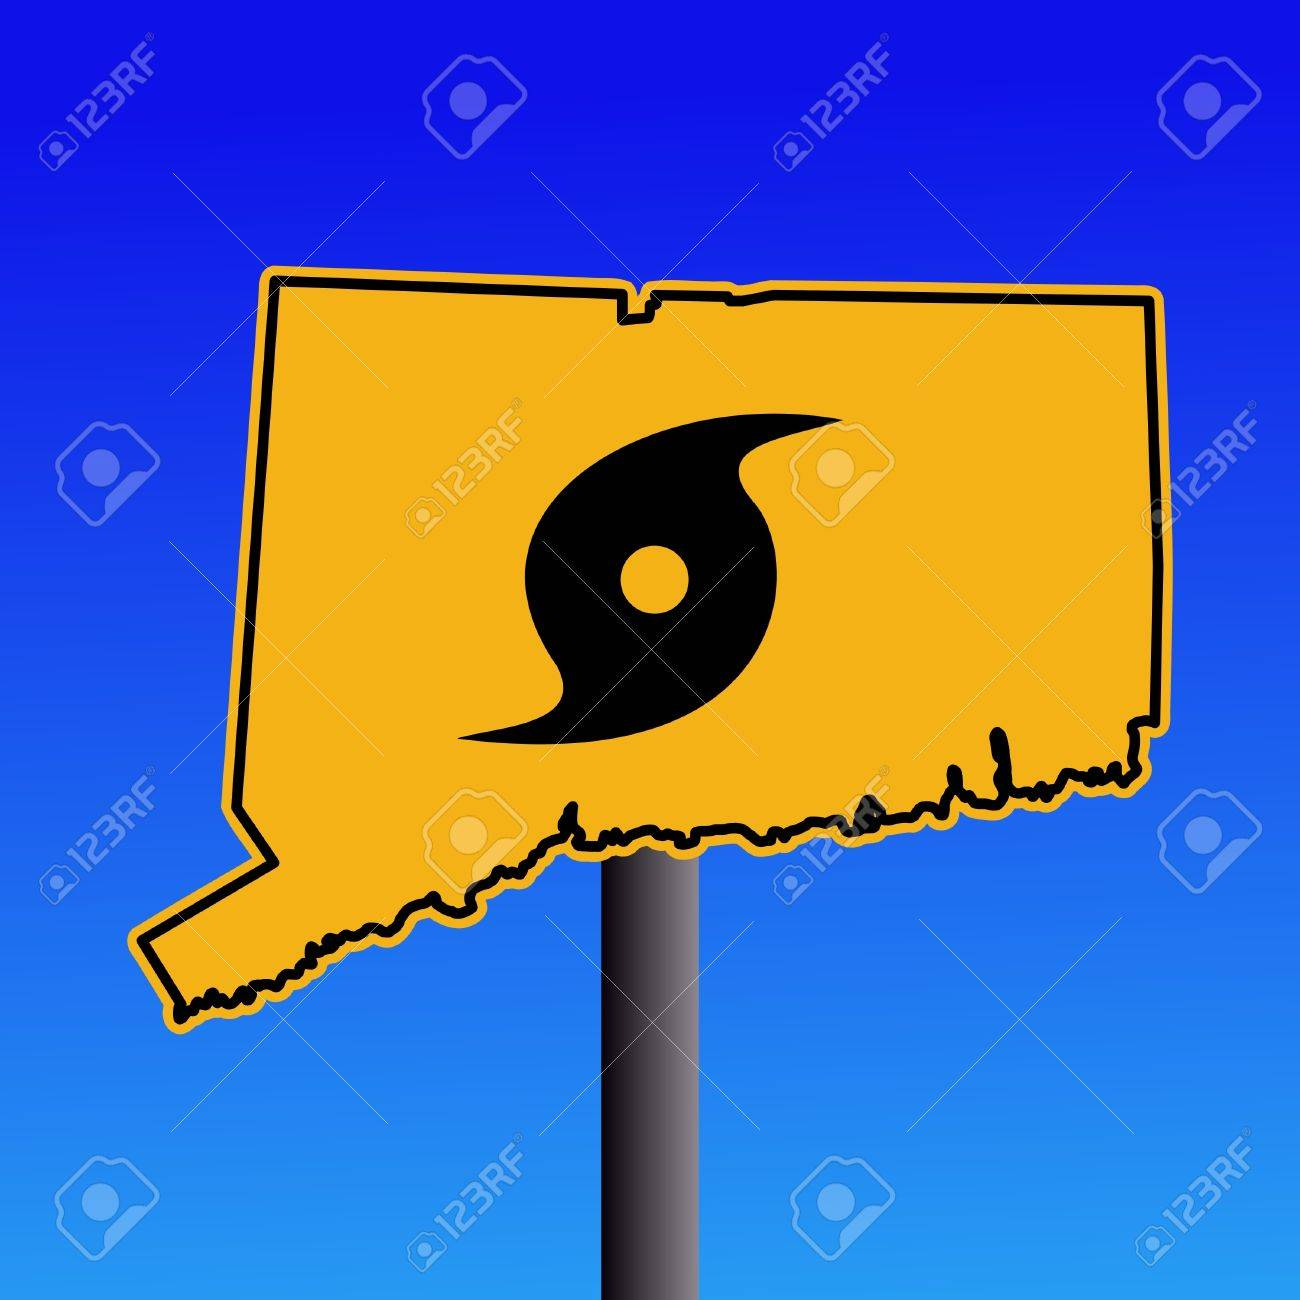 Connecticut Warning Sign With Hurricane Symbol Illustration Stock